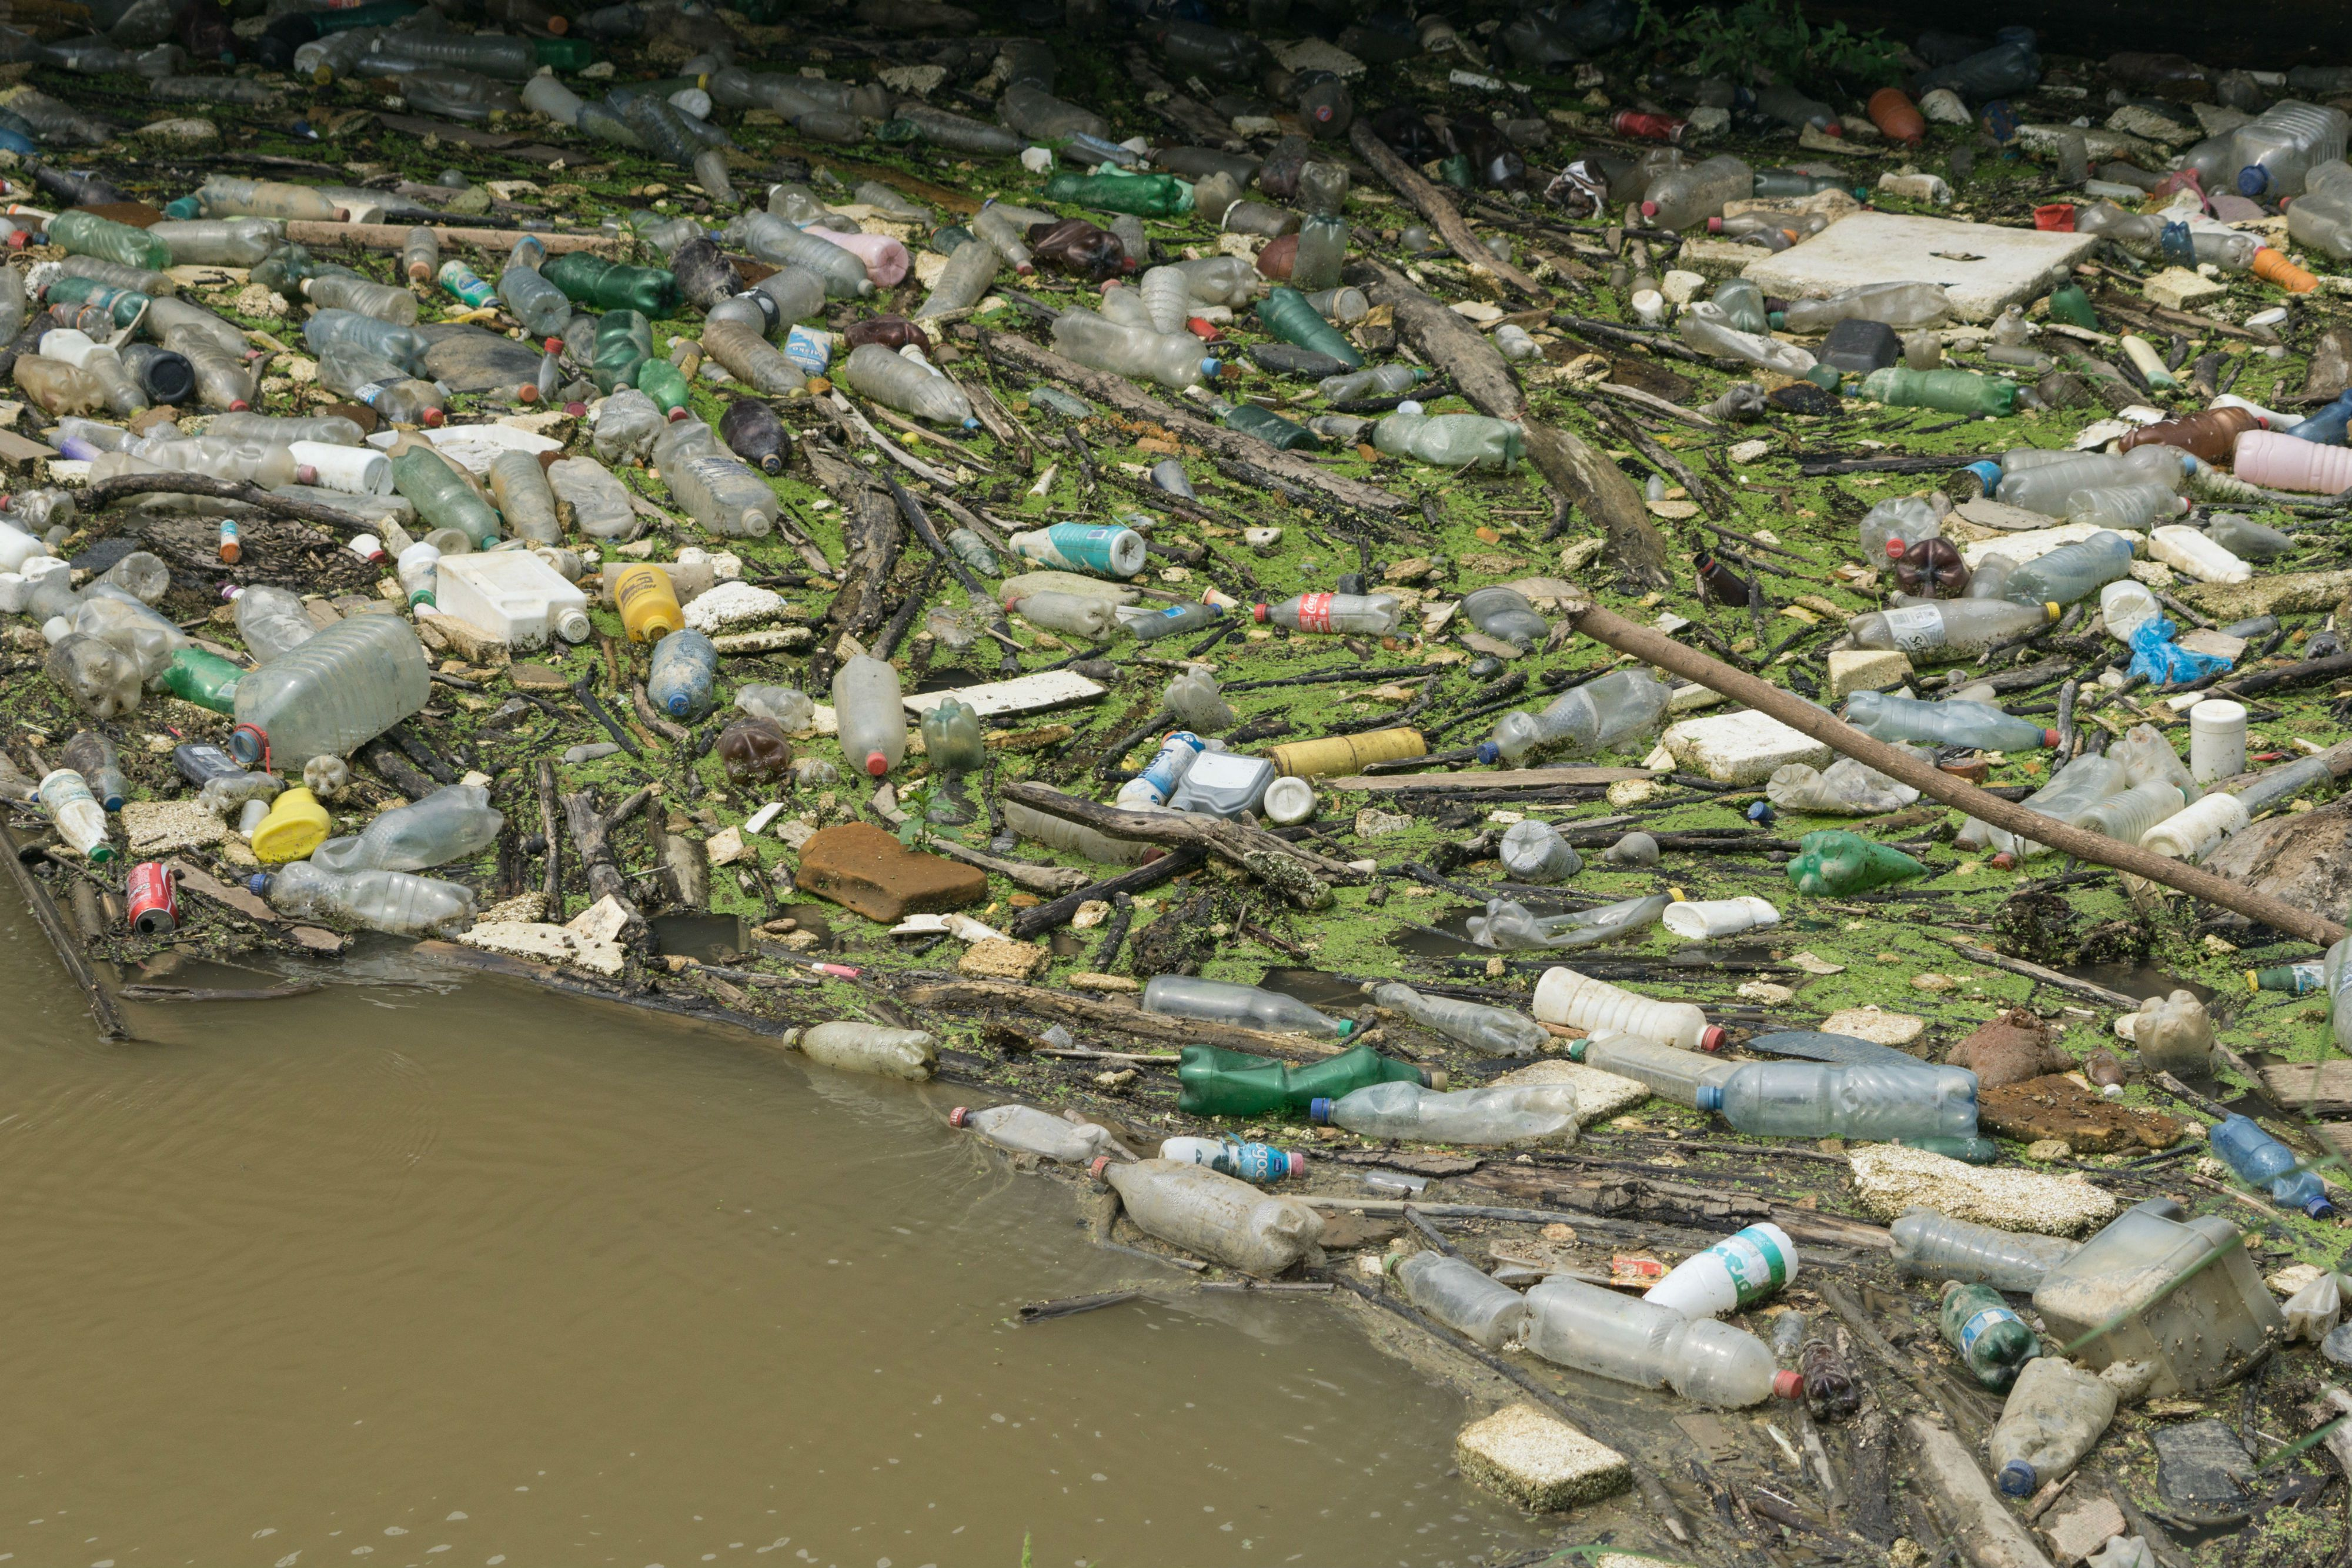 water pollution is the contamination of For instance, water pollution due to mercury kills marine life while water contamination due to a fecal matter does not pose much danger pollution is caused by man whereas contamination may be brought about by man or contaminants may be inherently present in the environment.